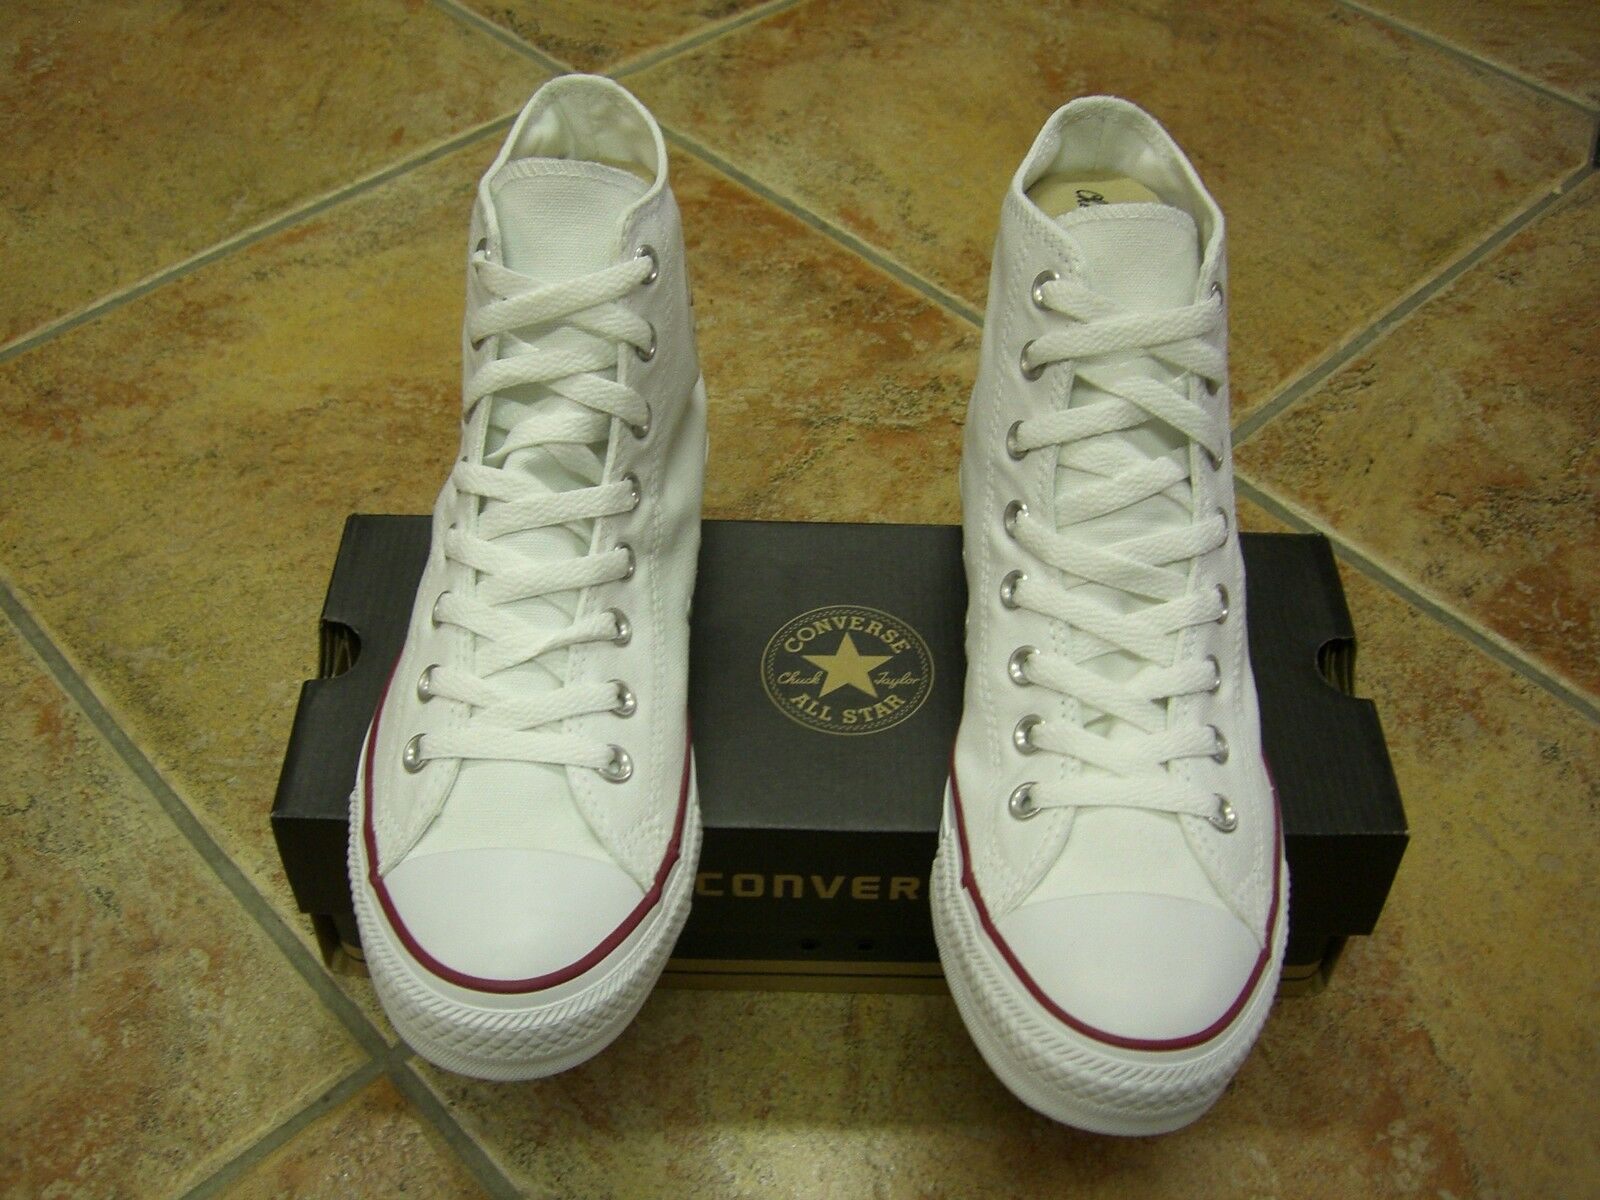 Converse Chucks All Star HI Gr.38 Optical White M7650 NEU Top aktuell